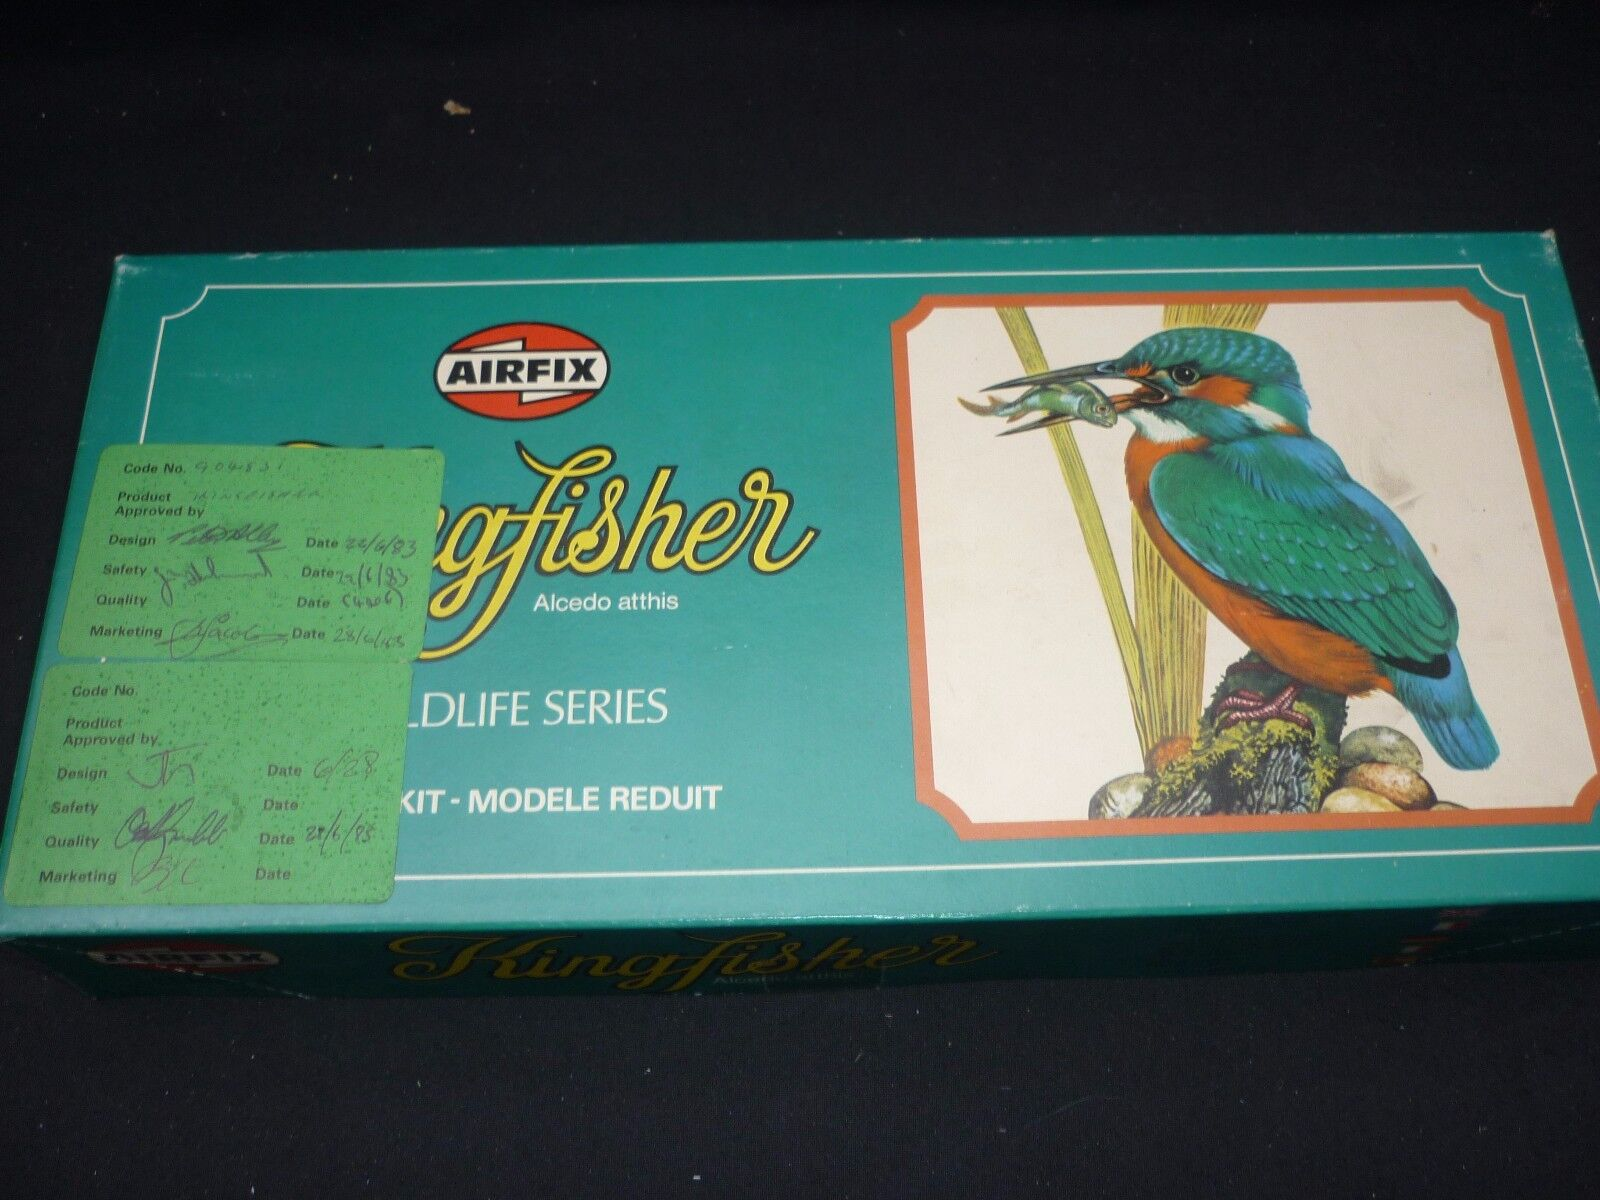 Airfix un made predotype model of a KINGFISHER, sign off by.the creature..